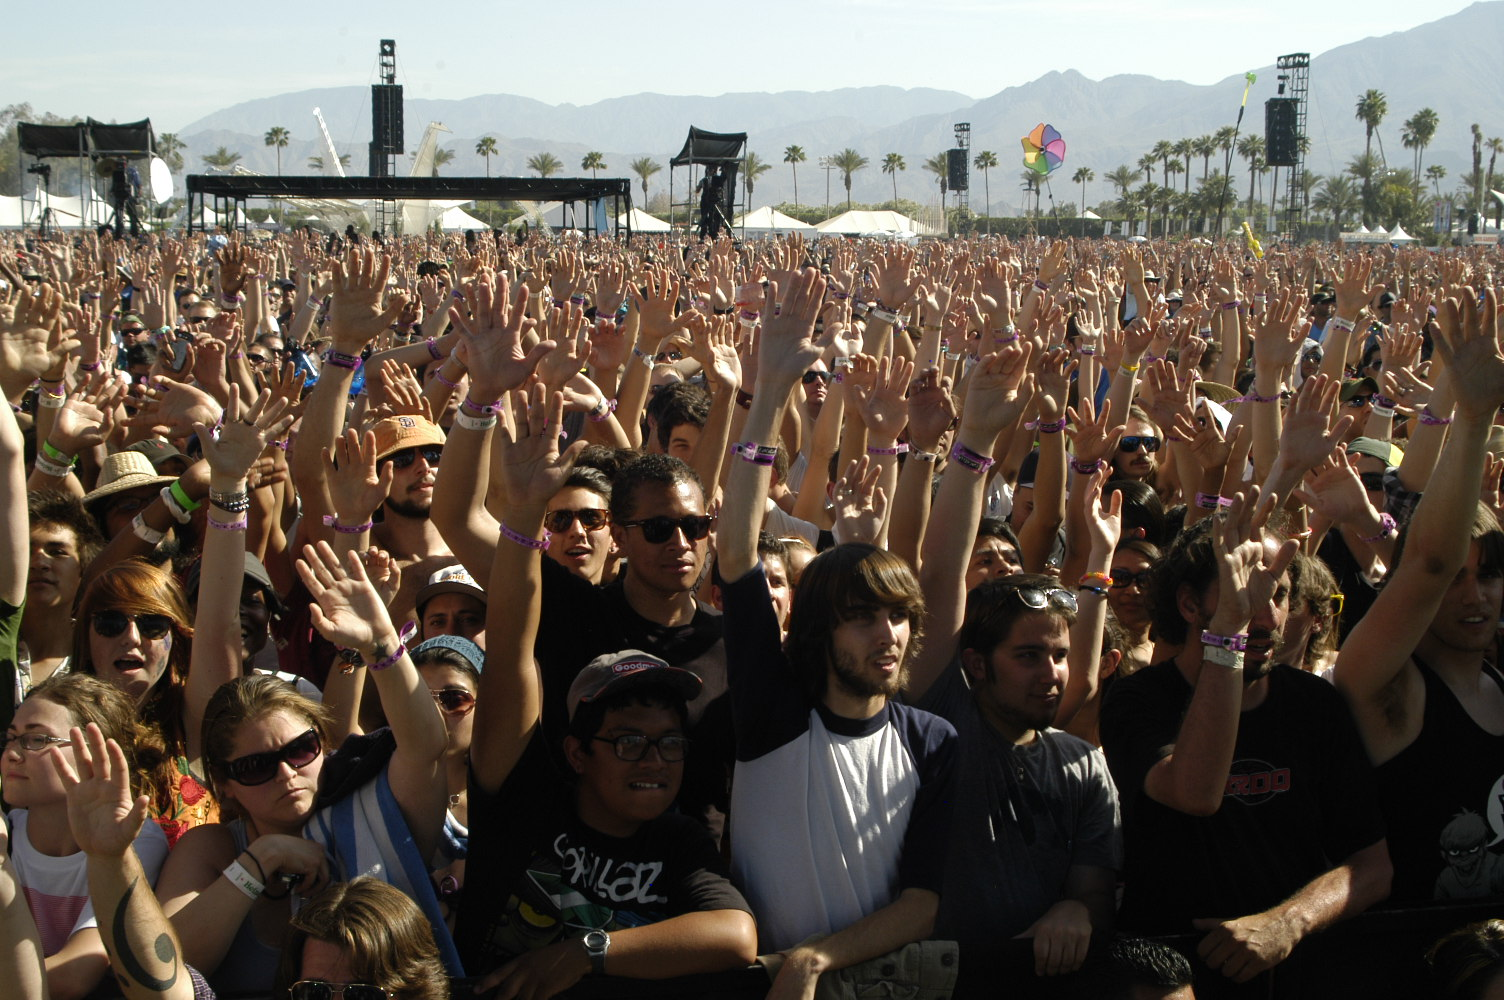 A look at Coachella and Wrigley's new Twitter Campaign